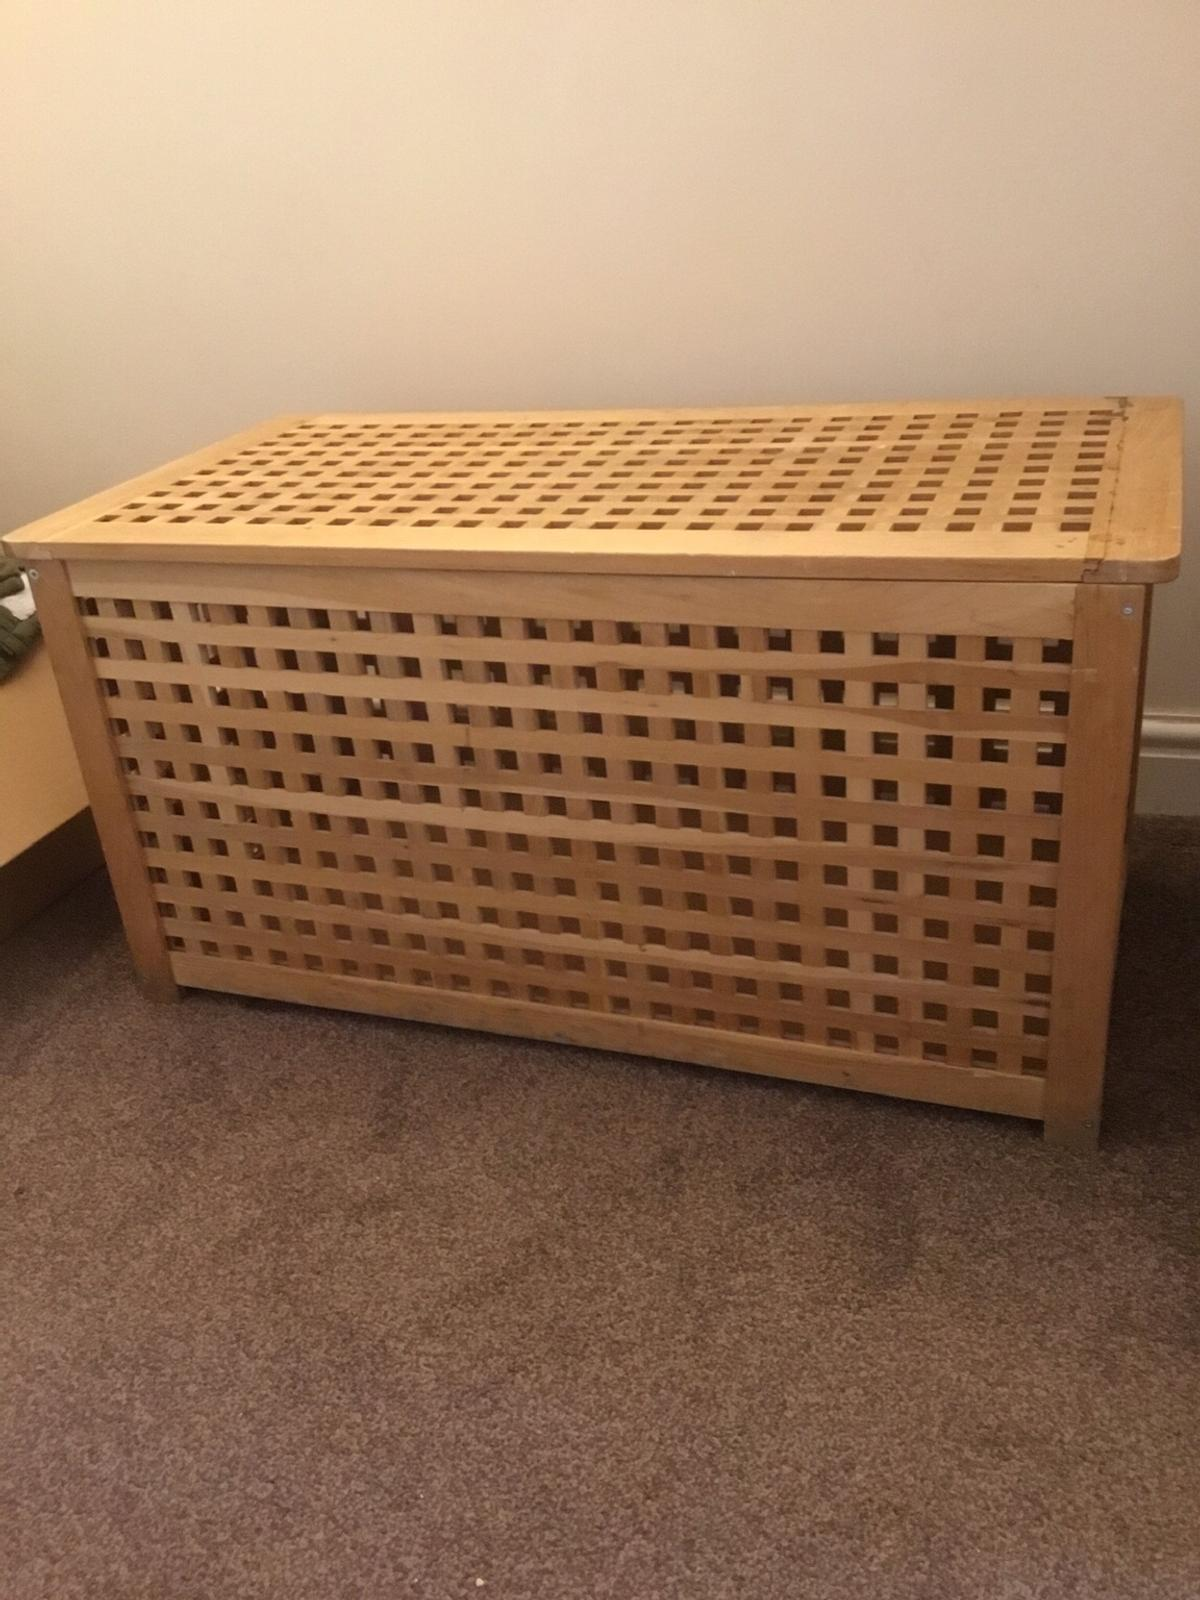 Large Ikea Hol Storage Blanket Box In Ws11 Cannock Chase For 15 00 For Sale Shpock